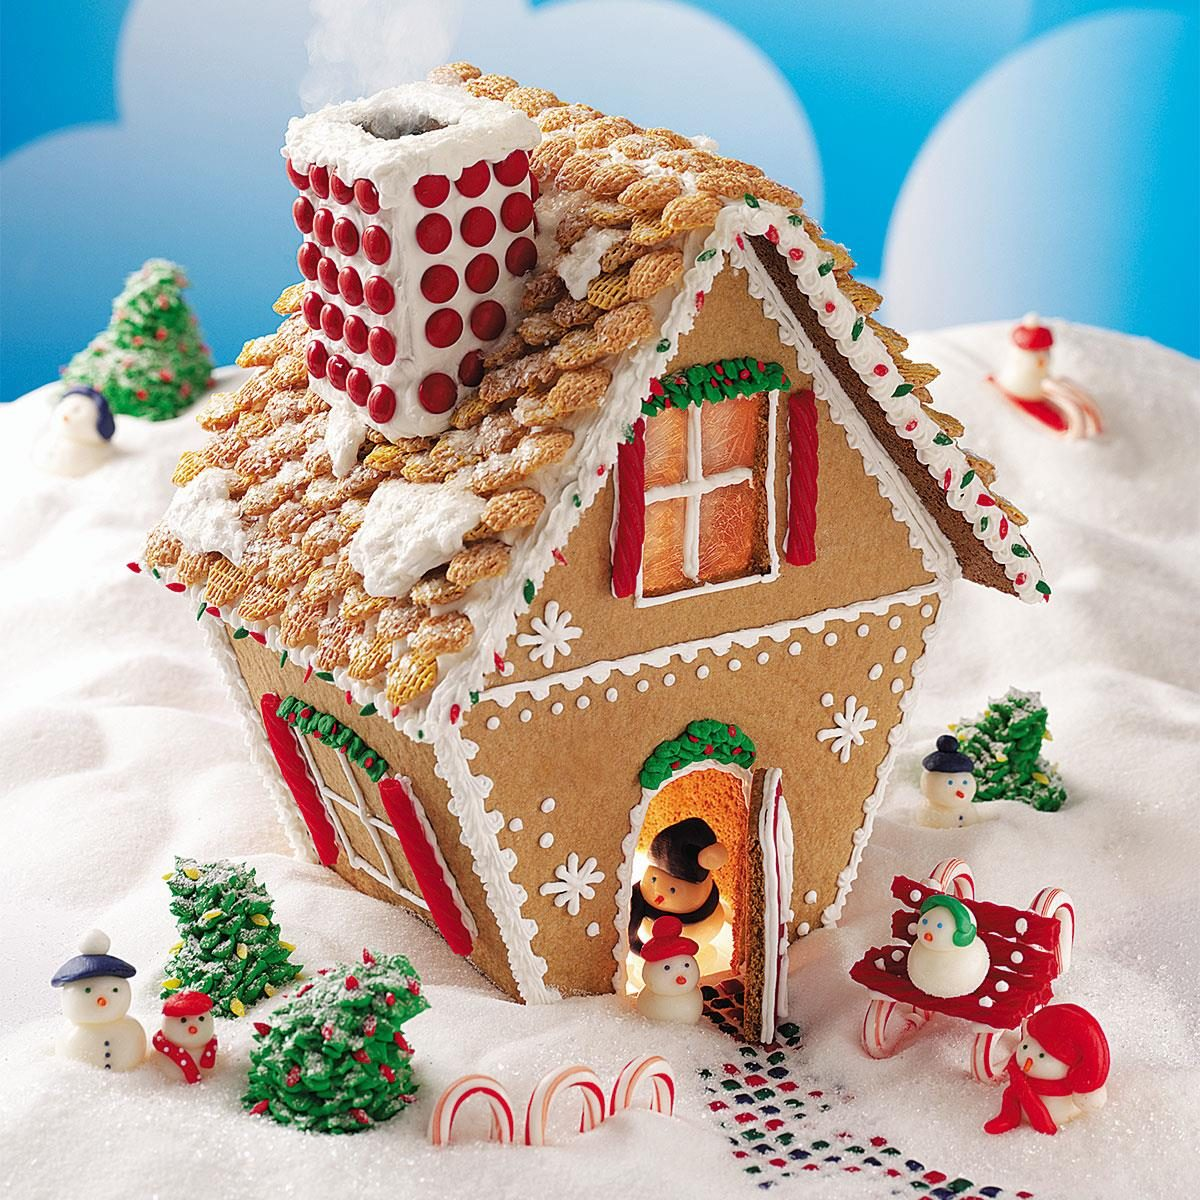 Gingerbread House Christmas Decorations